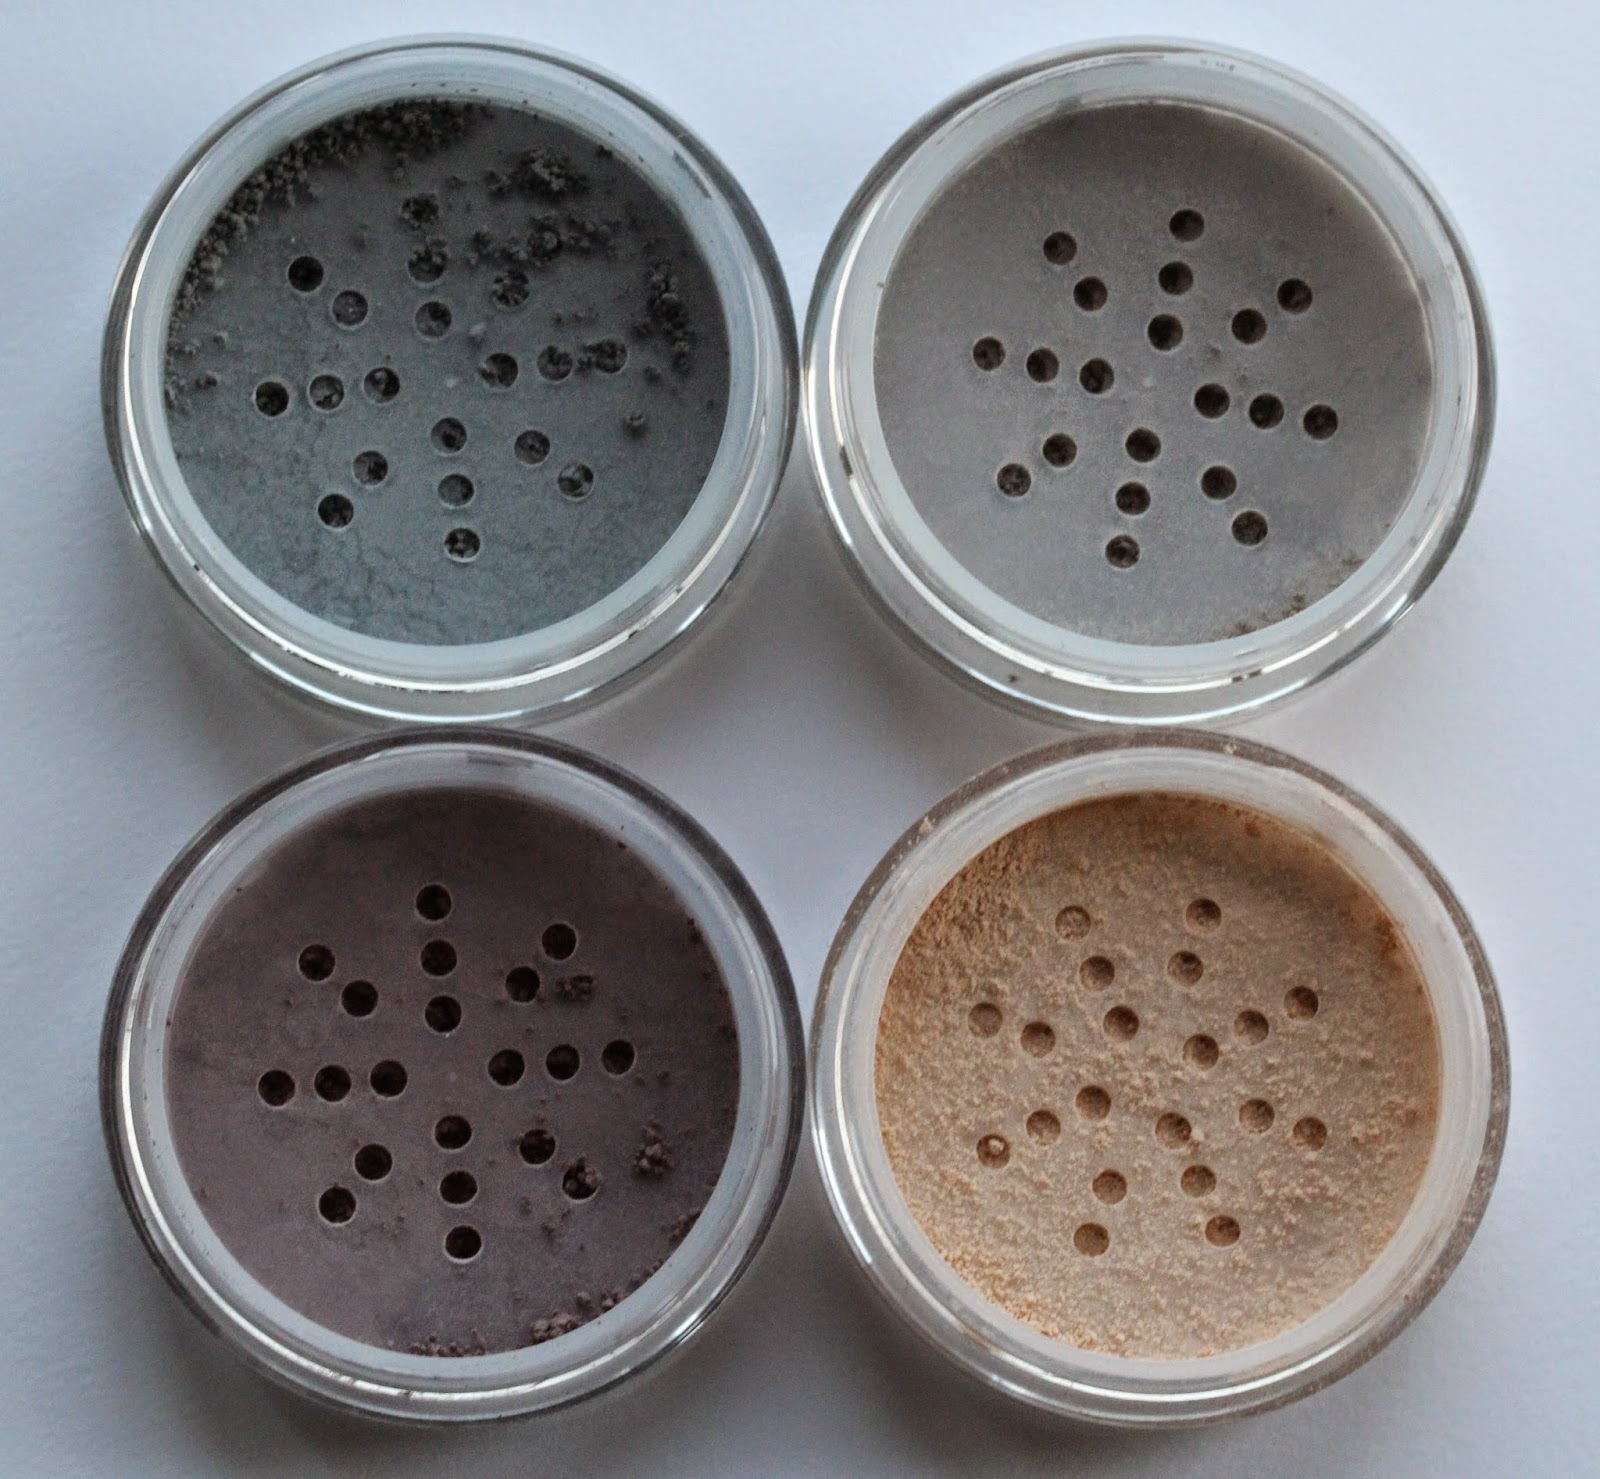 Shiro Cheekbones contouring powders